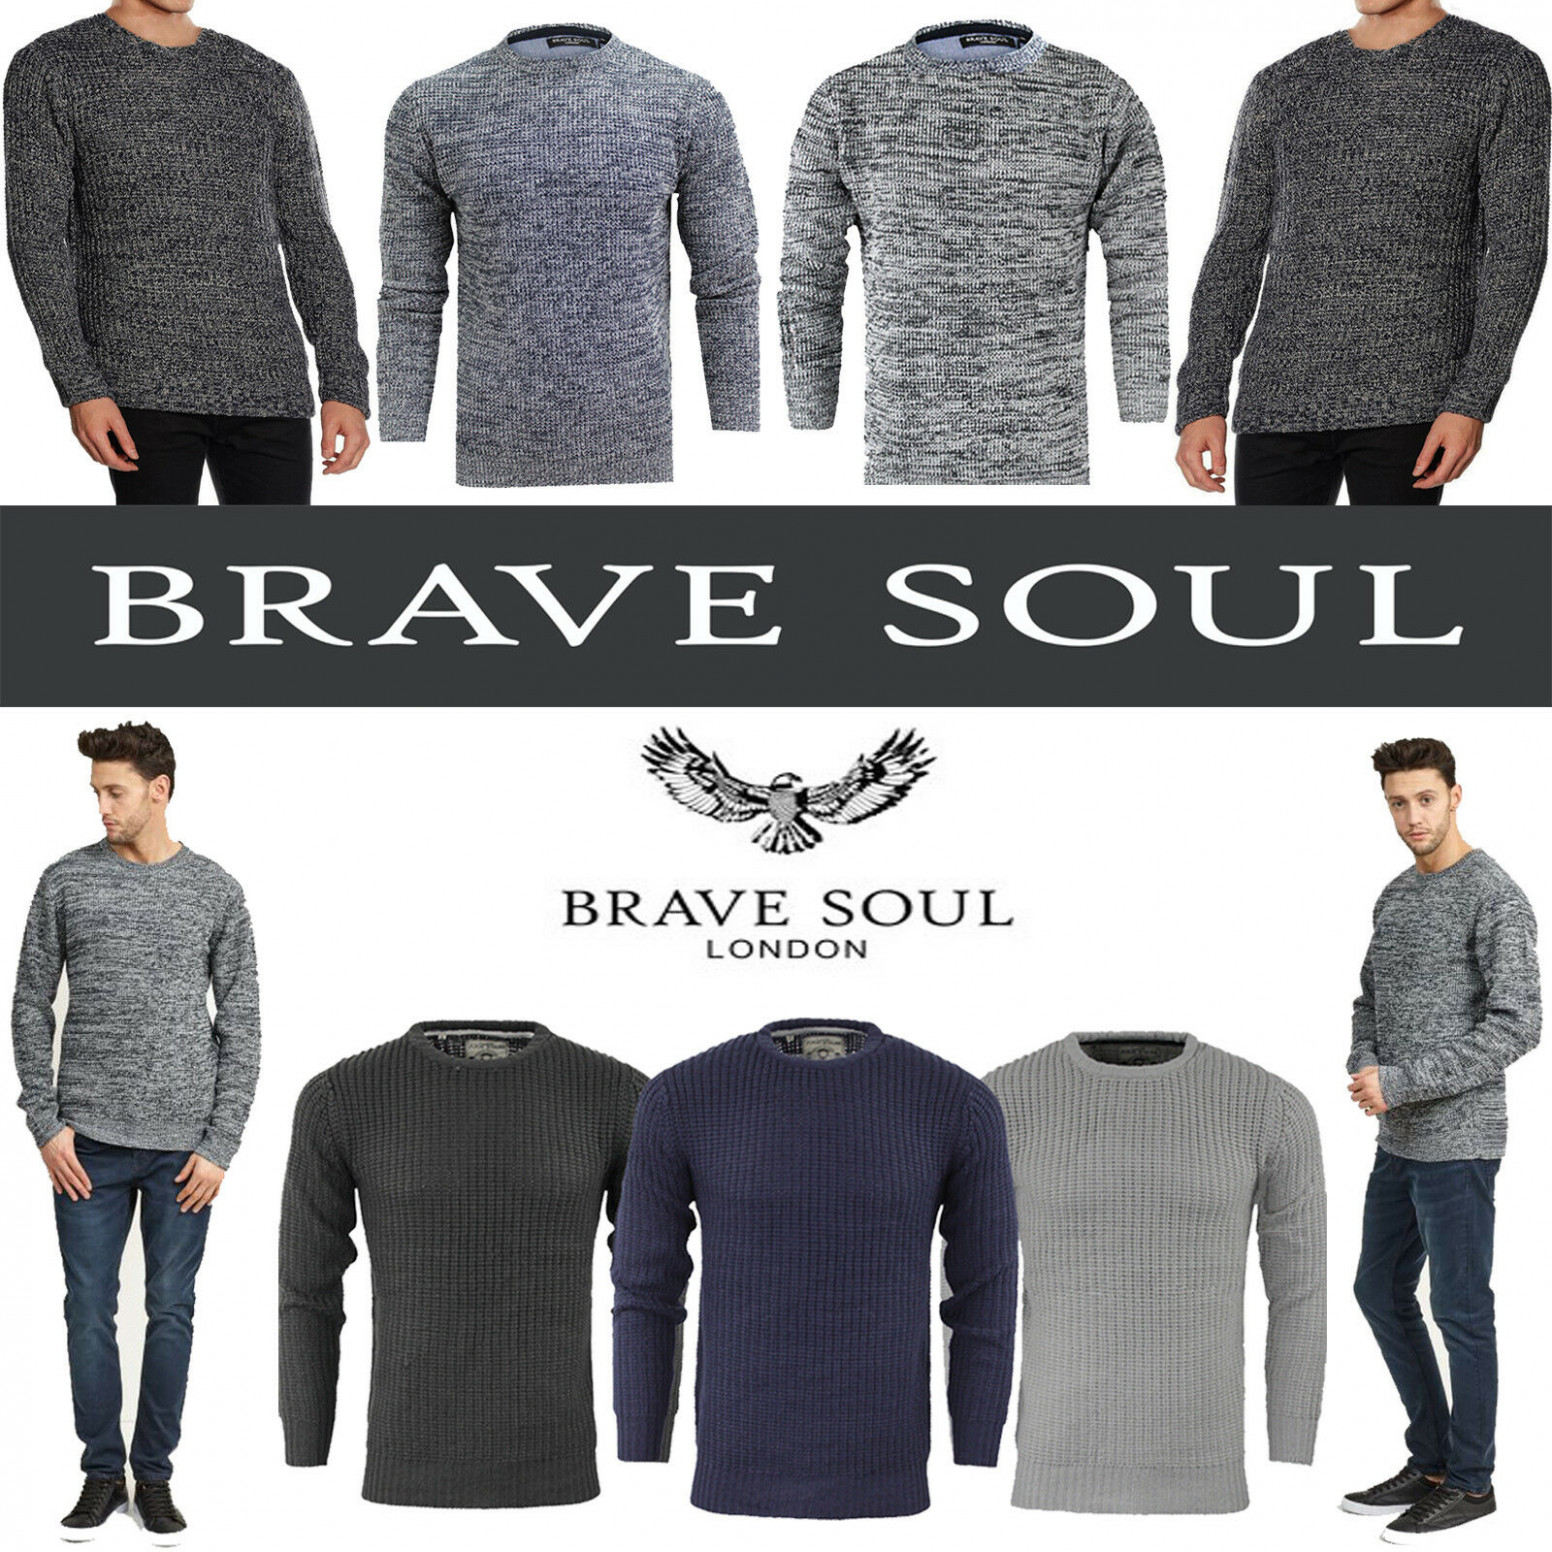 Details zu BRAVE SOUL MENS CREW NECK JUMPERS PULLOVER LONG SLEEVE WINTER  SWEATER KNITTED TO